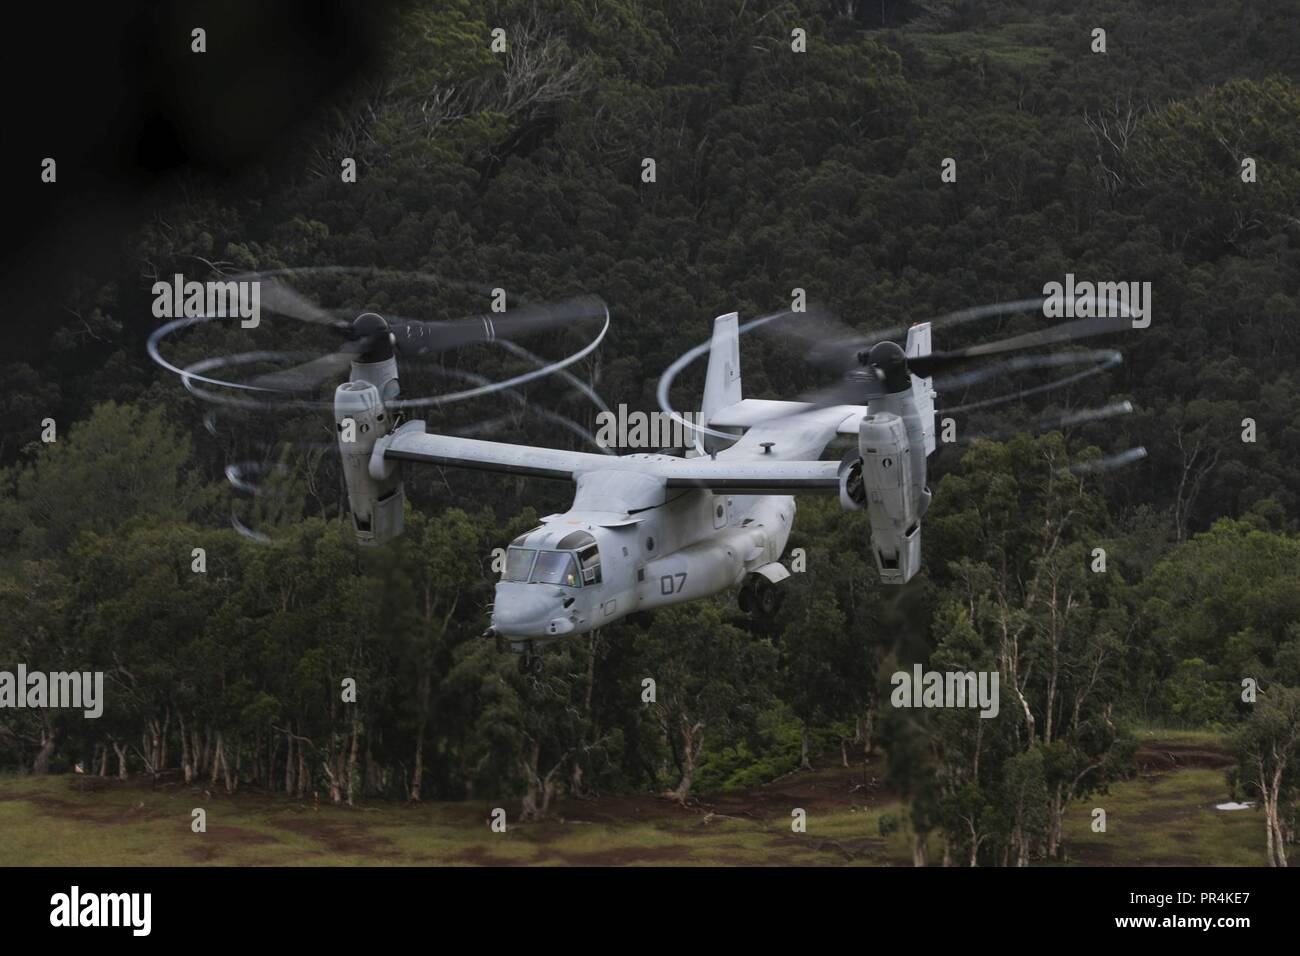 An MV-22 Osprey aircraft assigned to Marine Medium Tiltrotor Squadron 363 (VMM-363), takes off during a confined area landing exercise near the Kahuku Training Area, Sept. 13, 2018. The training provided an opportunity for pilots and crew chiefs to improve their proficiency and experience in flying around a tropical environment. Stock Photo